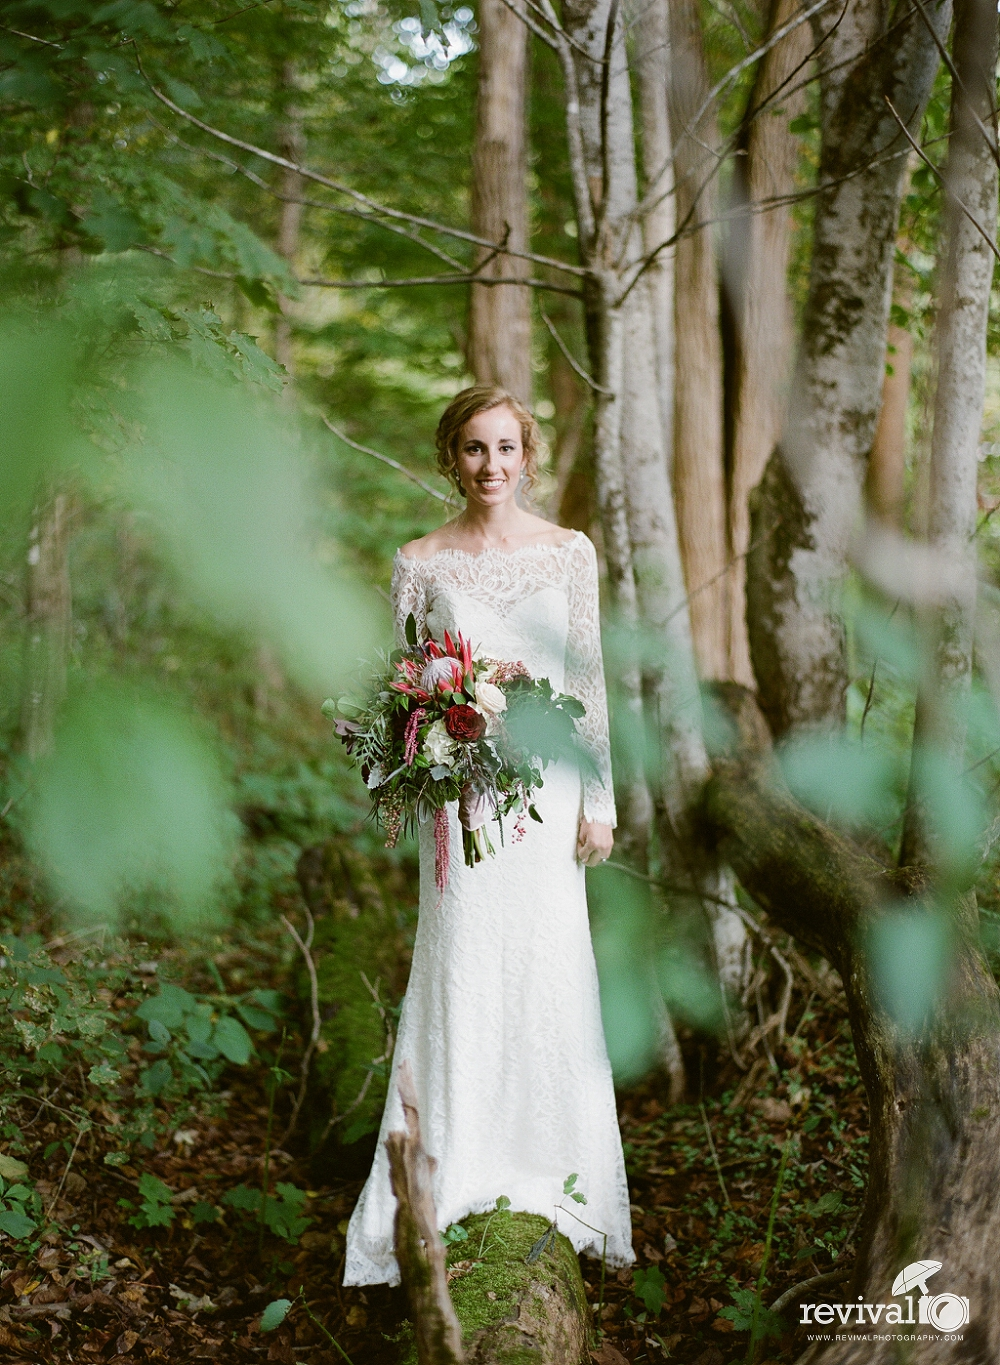 Kendra's Mountain Woodlands Bridal Session in Boone, NC